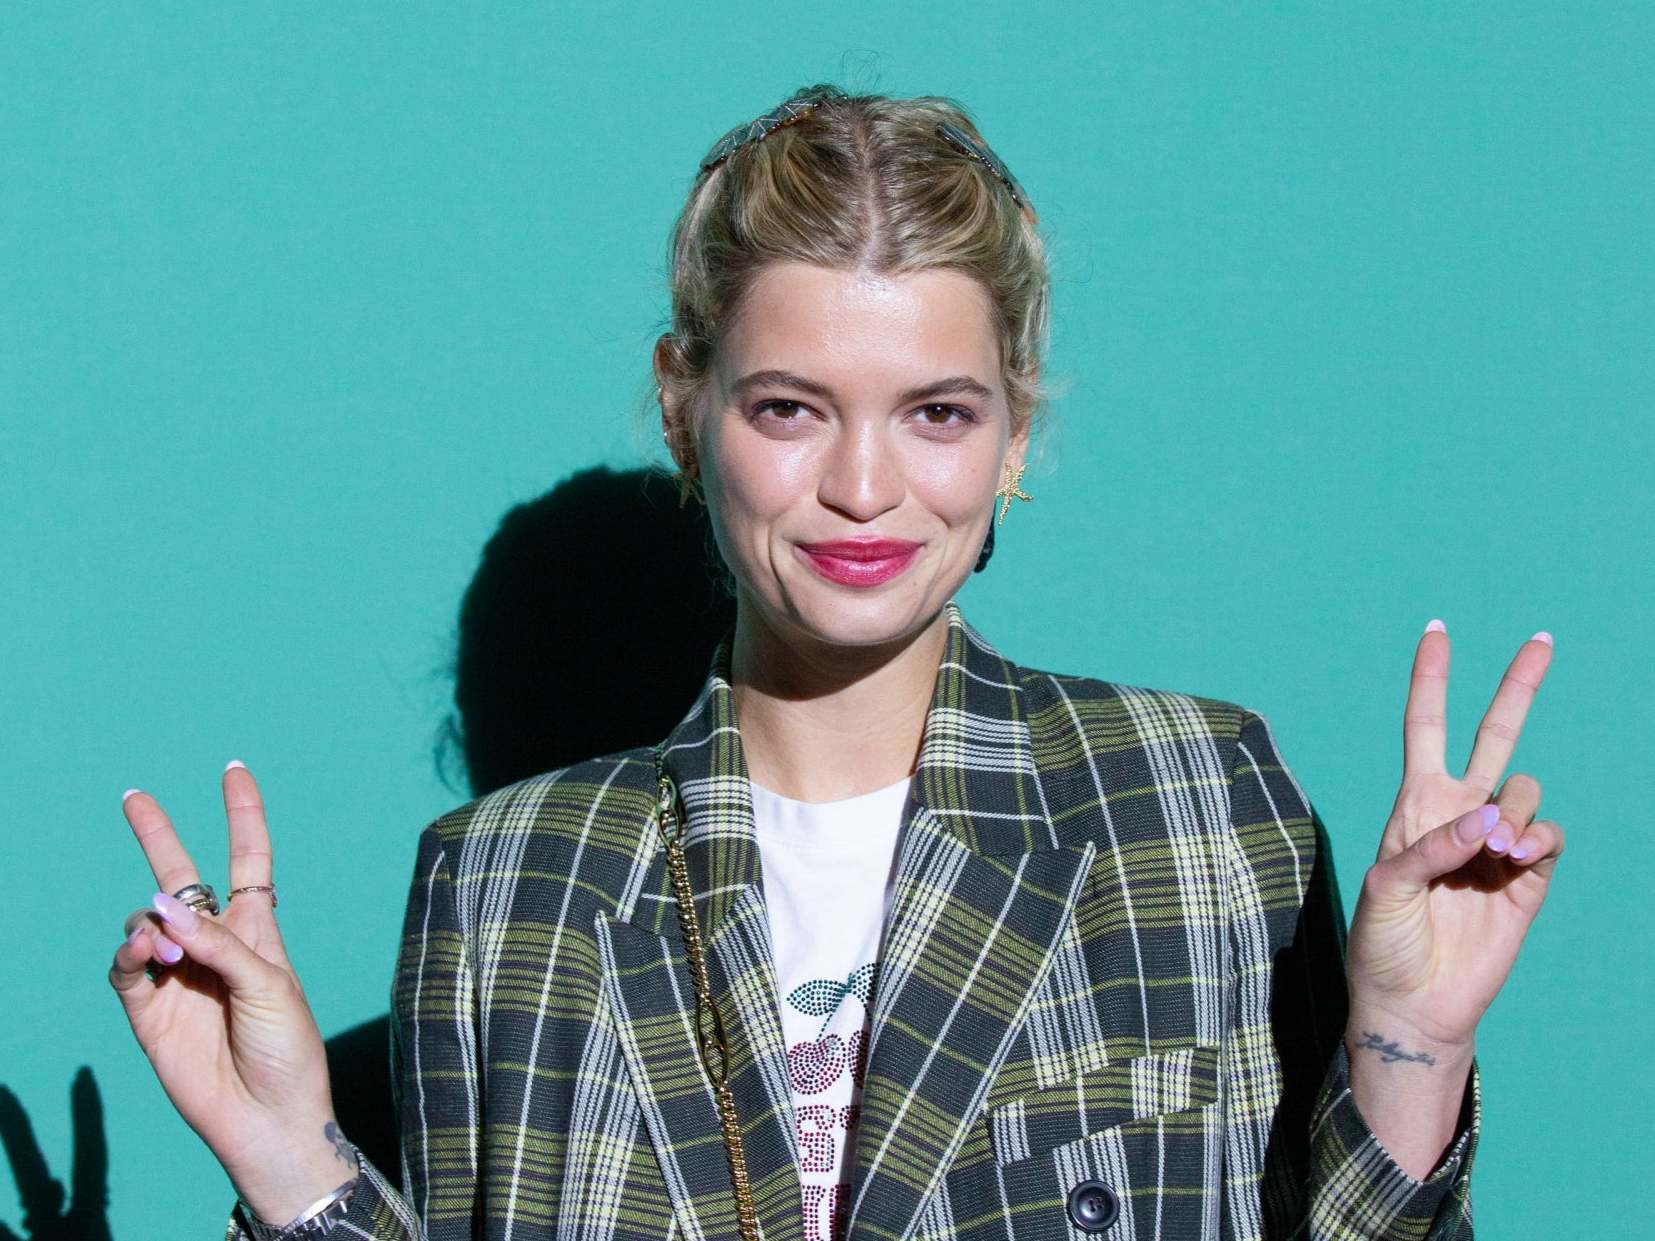 London Fashion Week: All the best-dressed celebrities on the front row